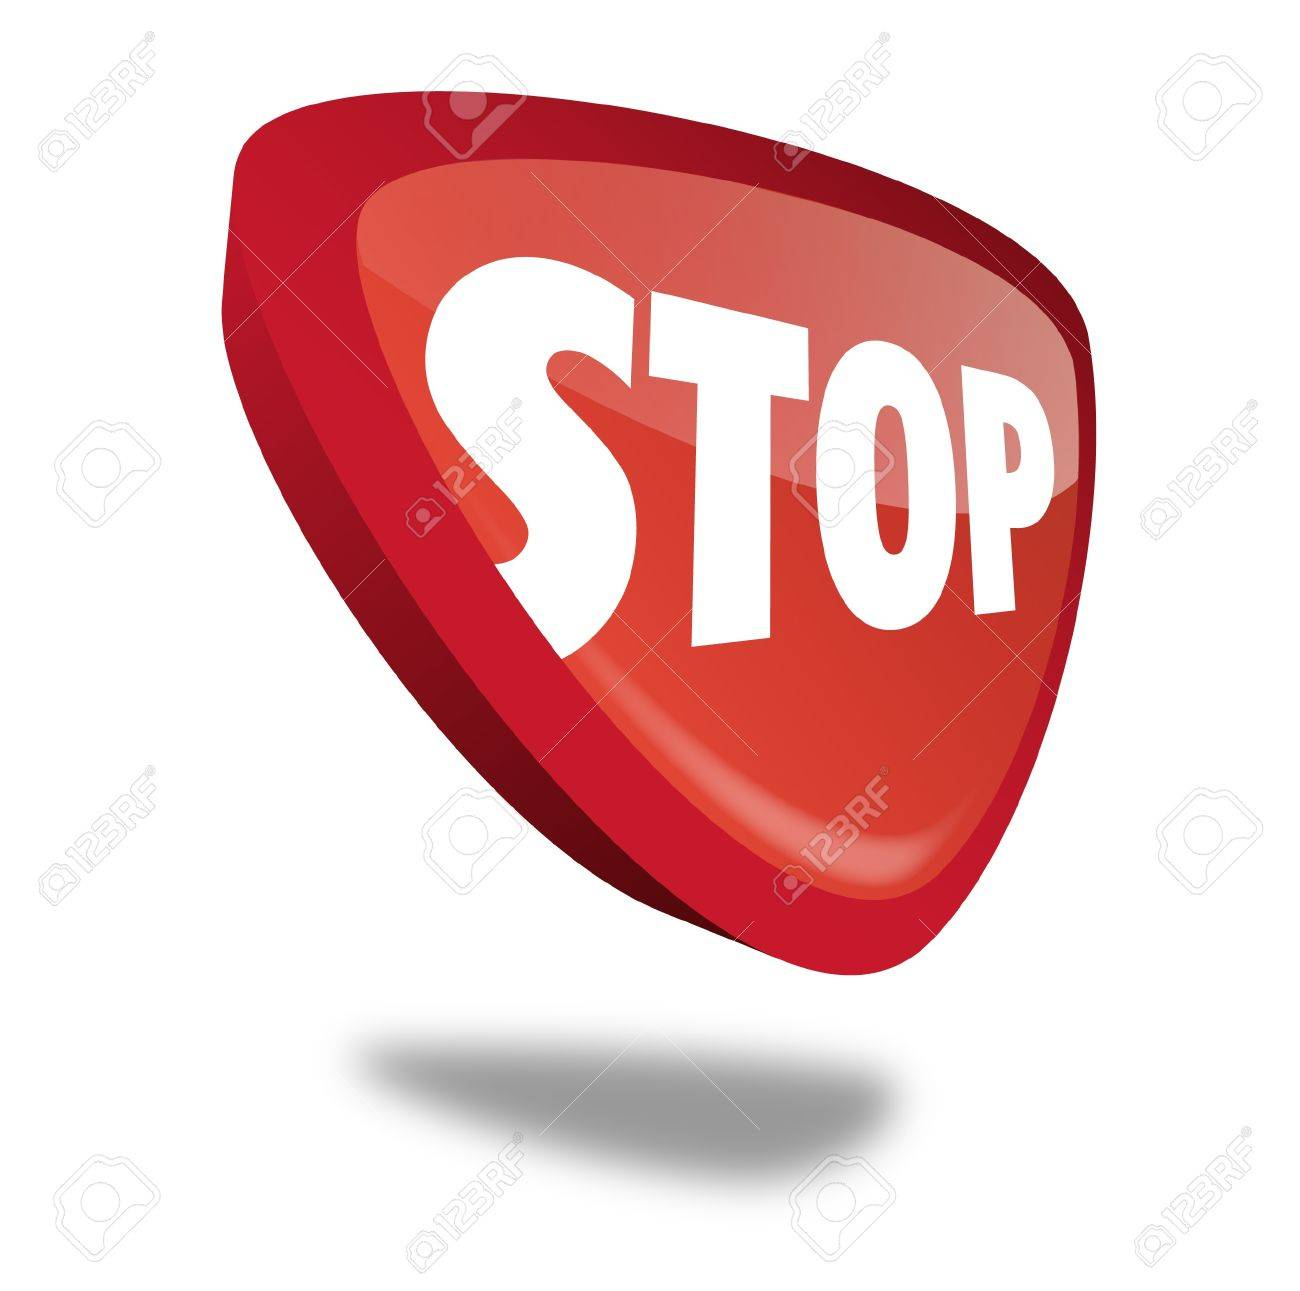 red stop button with perspective Stock Photo - 10269505